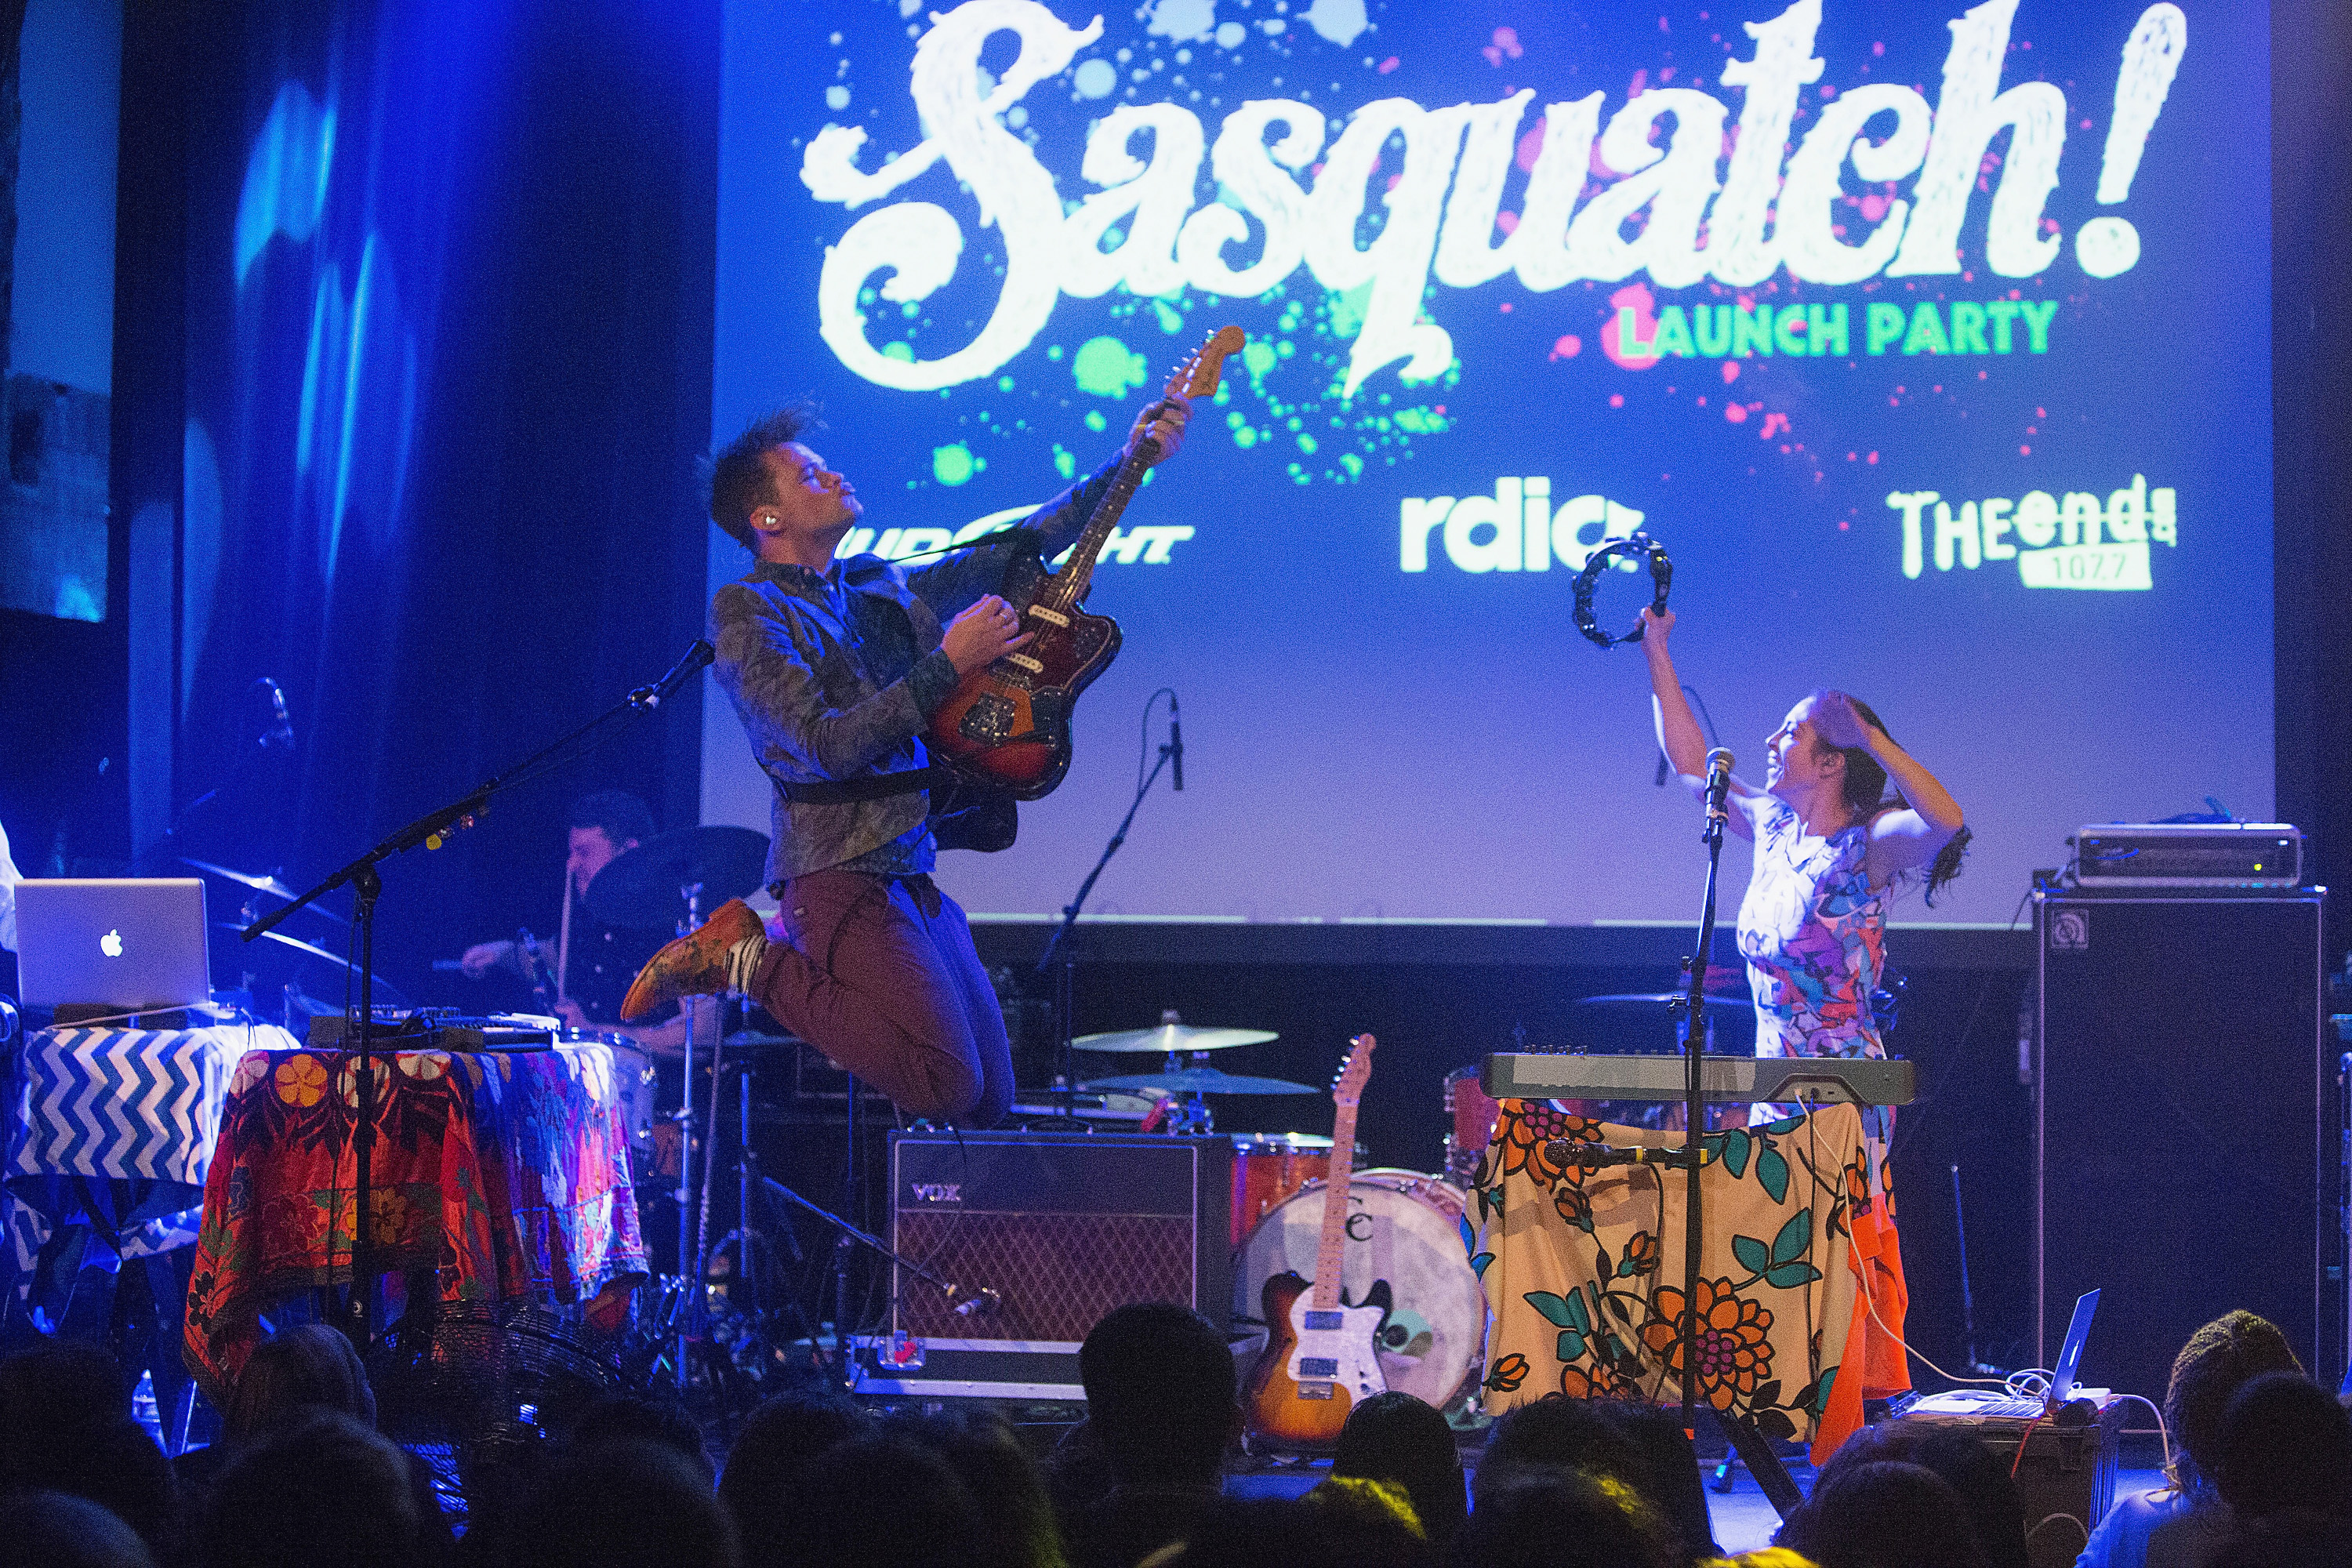 St. Lucia performs on stage at the Neptune Theatre for the Sasquatch! Music Festival on February 3, 2014 in Seattle, Wa.